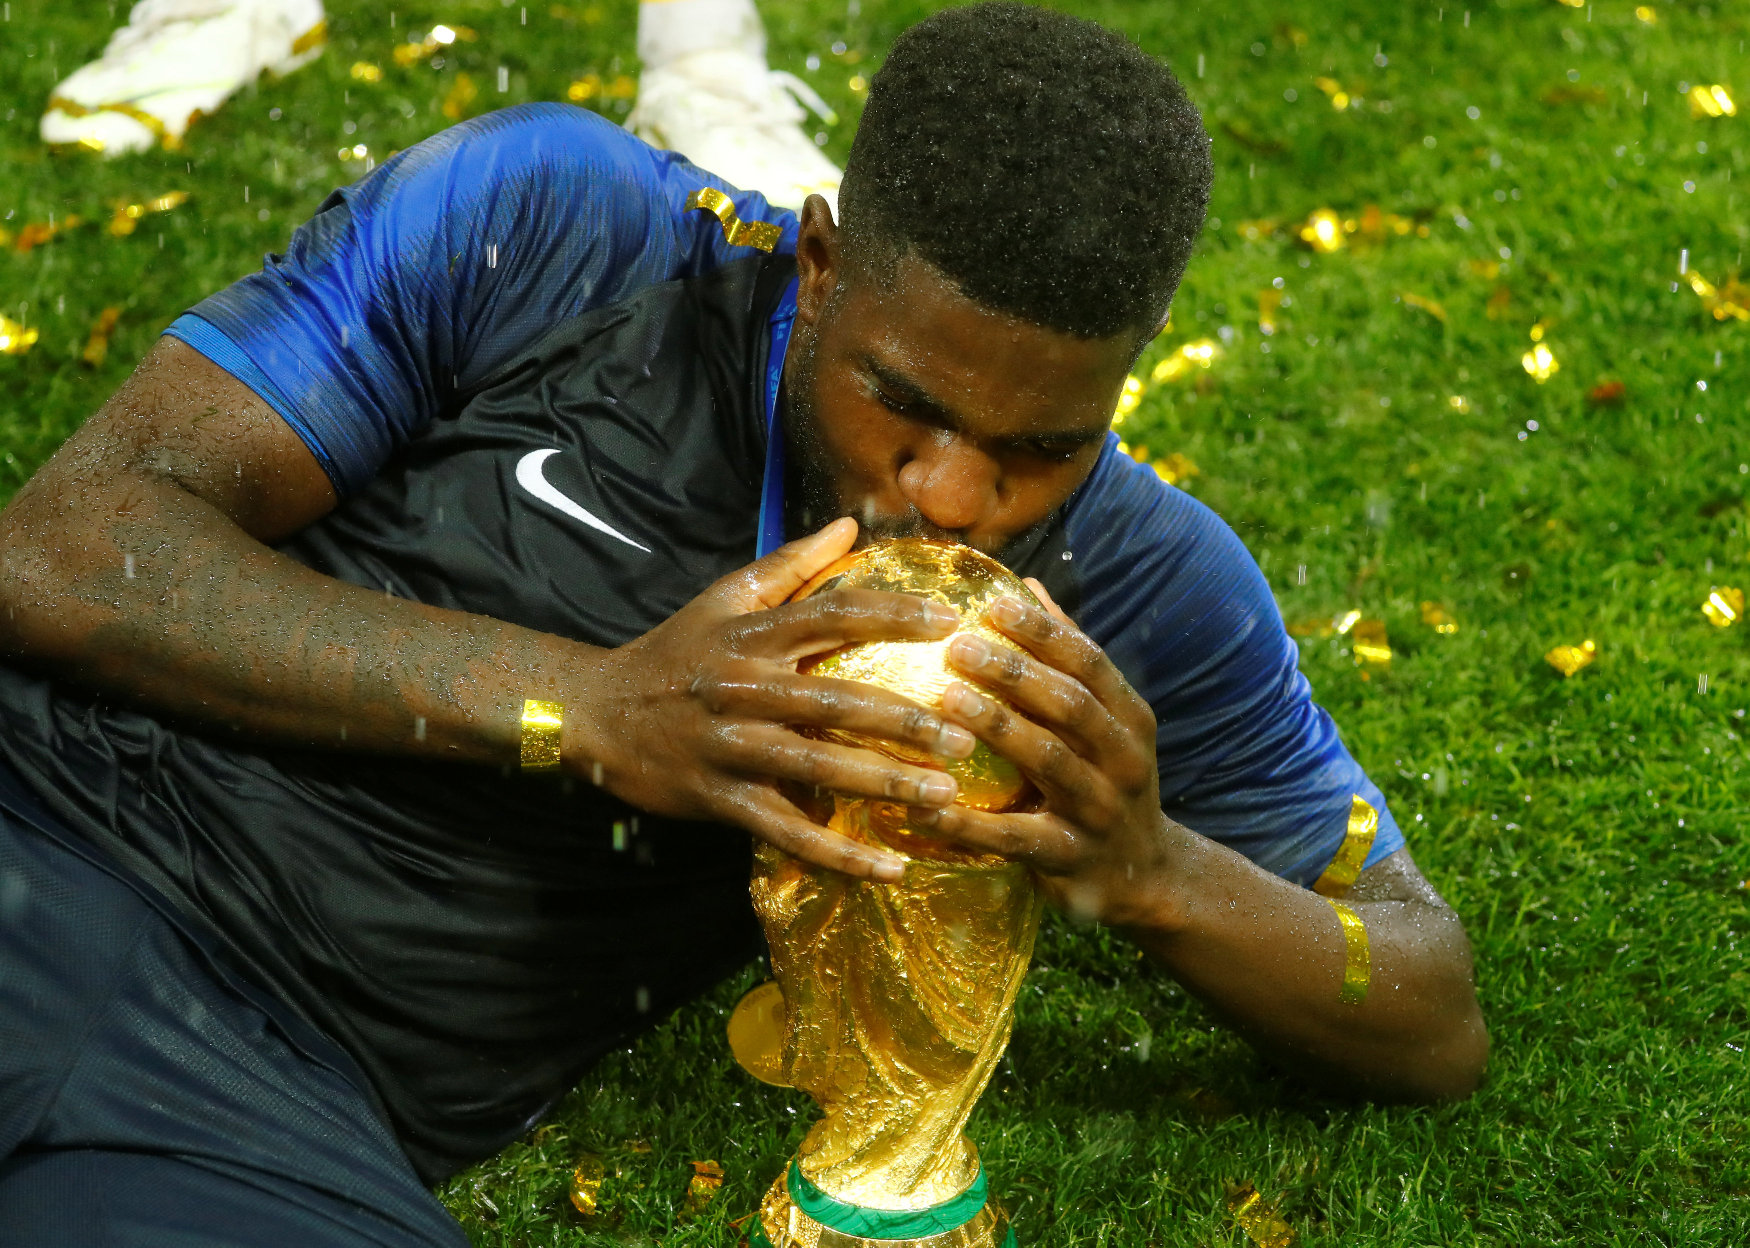 2018-07-15T174357Z_986585620_RC1AAA9D5A20_RTRMADP_3_SOCCER-WORLDCUP-FINAL